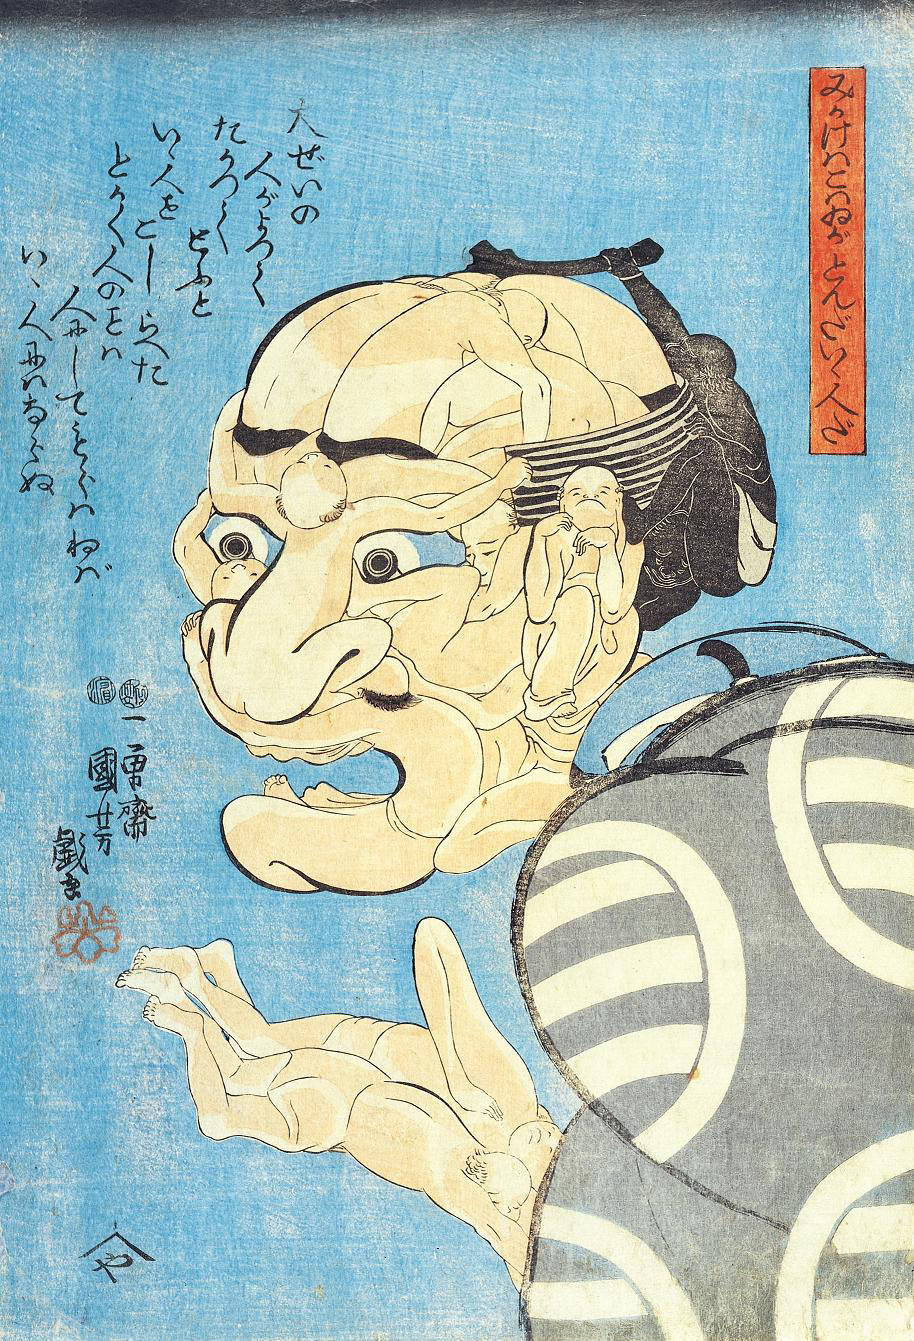 'Mikake wa kowai ga tonda ii hito da' ('He Looks Fierce but He's a Really Great Man') by Kuniyoshi Utagawa.